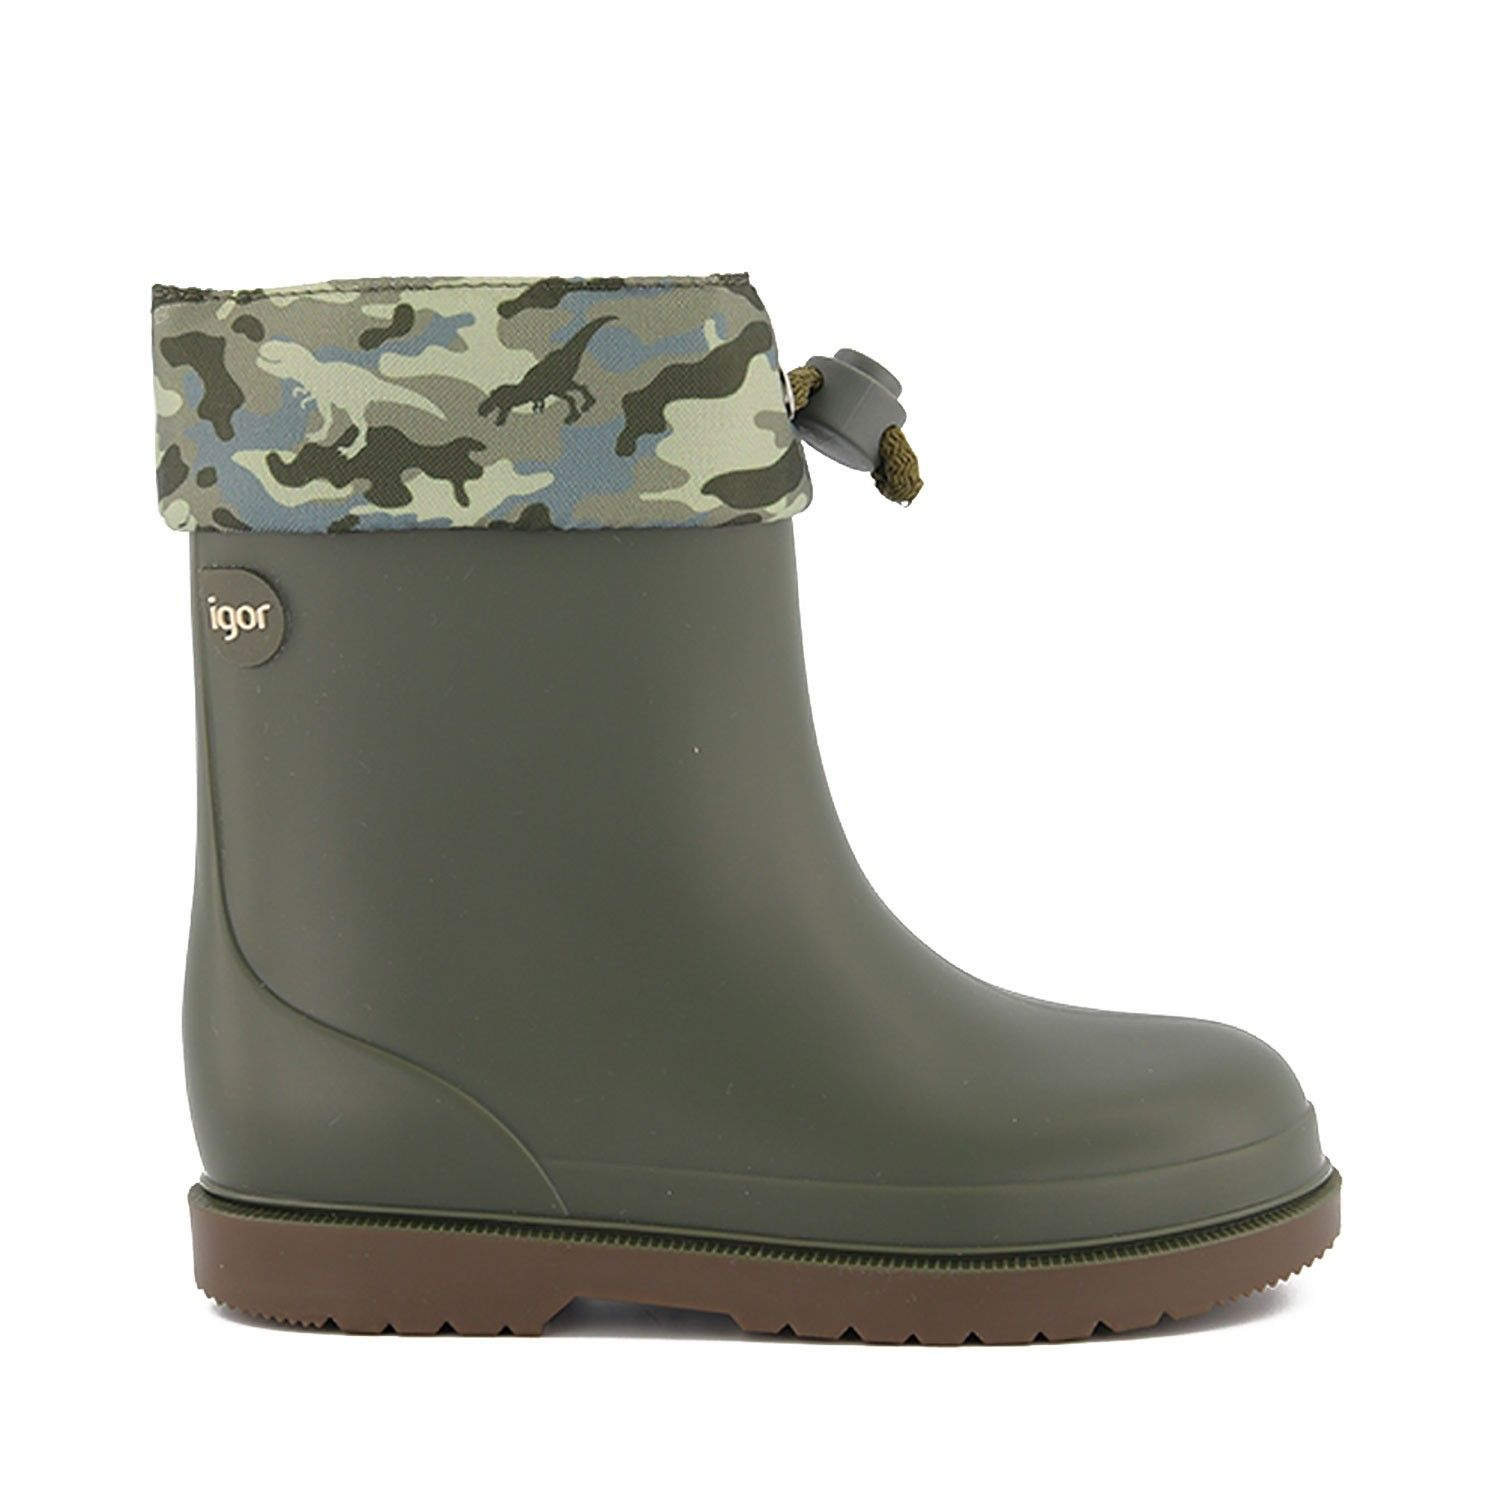 Picture of Igor W10212 kids boots army